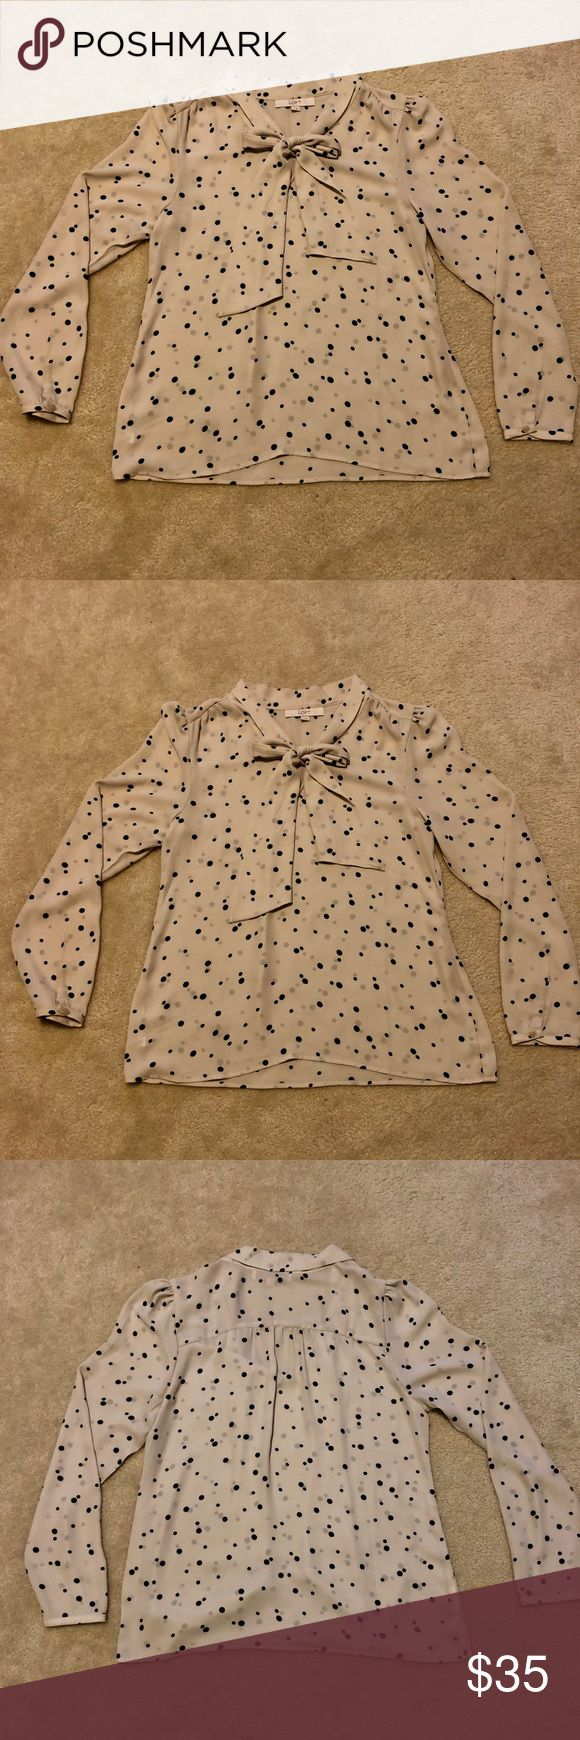 Loft Cream Polka Dot Tie Blouse- Size Medium Beautiful and Classy Loft Cream Tie Blouse with Black Polka Dot Detail- Size Medium. Light material that can be dressed up for work or paired with skinny jeans and heels for a night out! Great condition! LOFT Tops Blouses